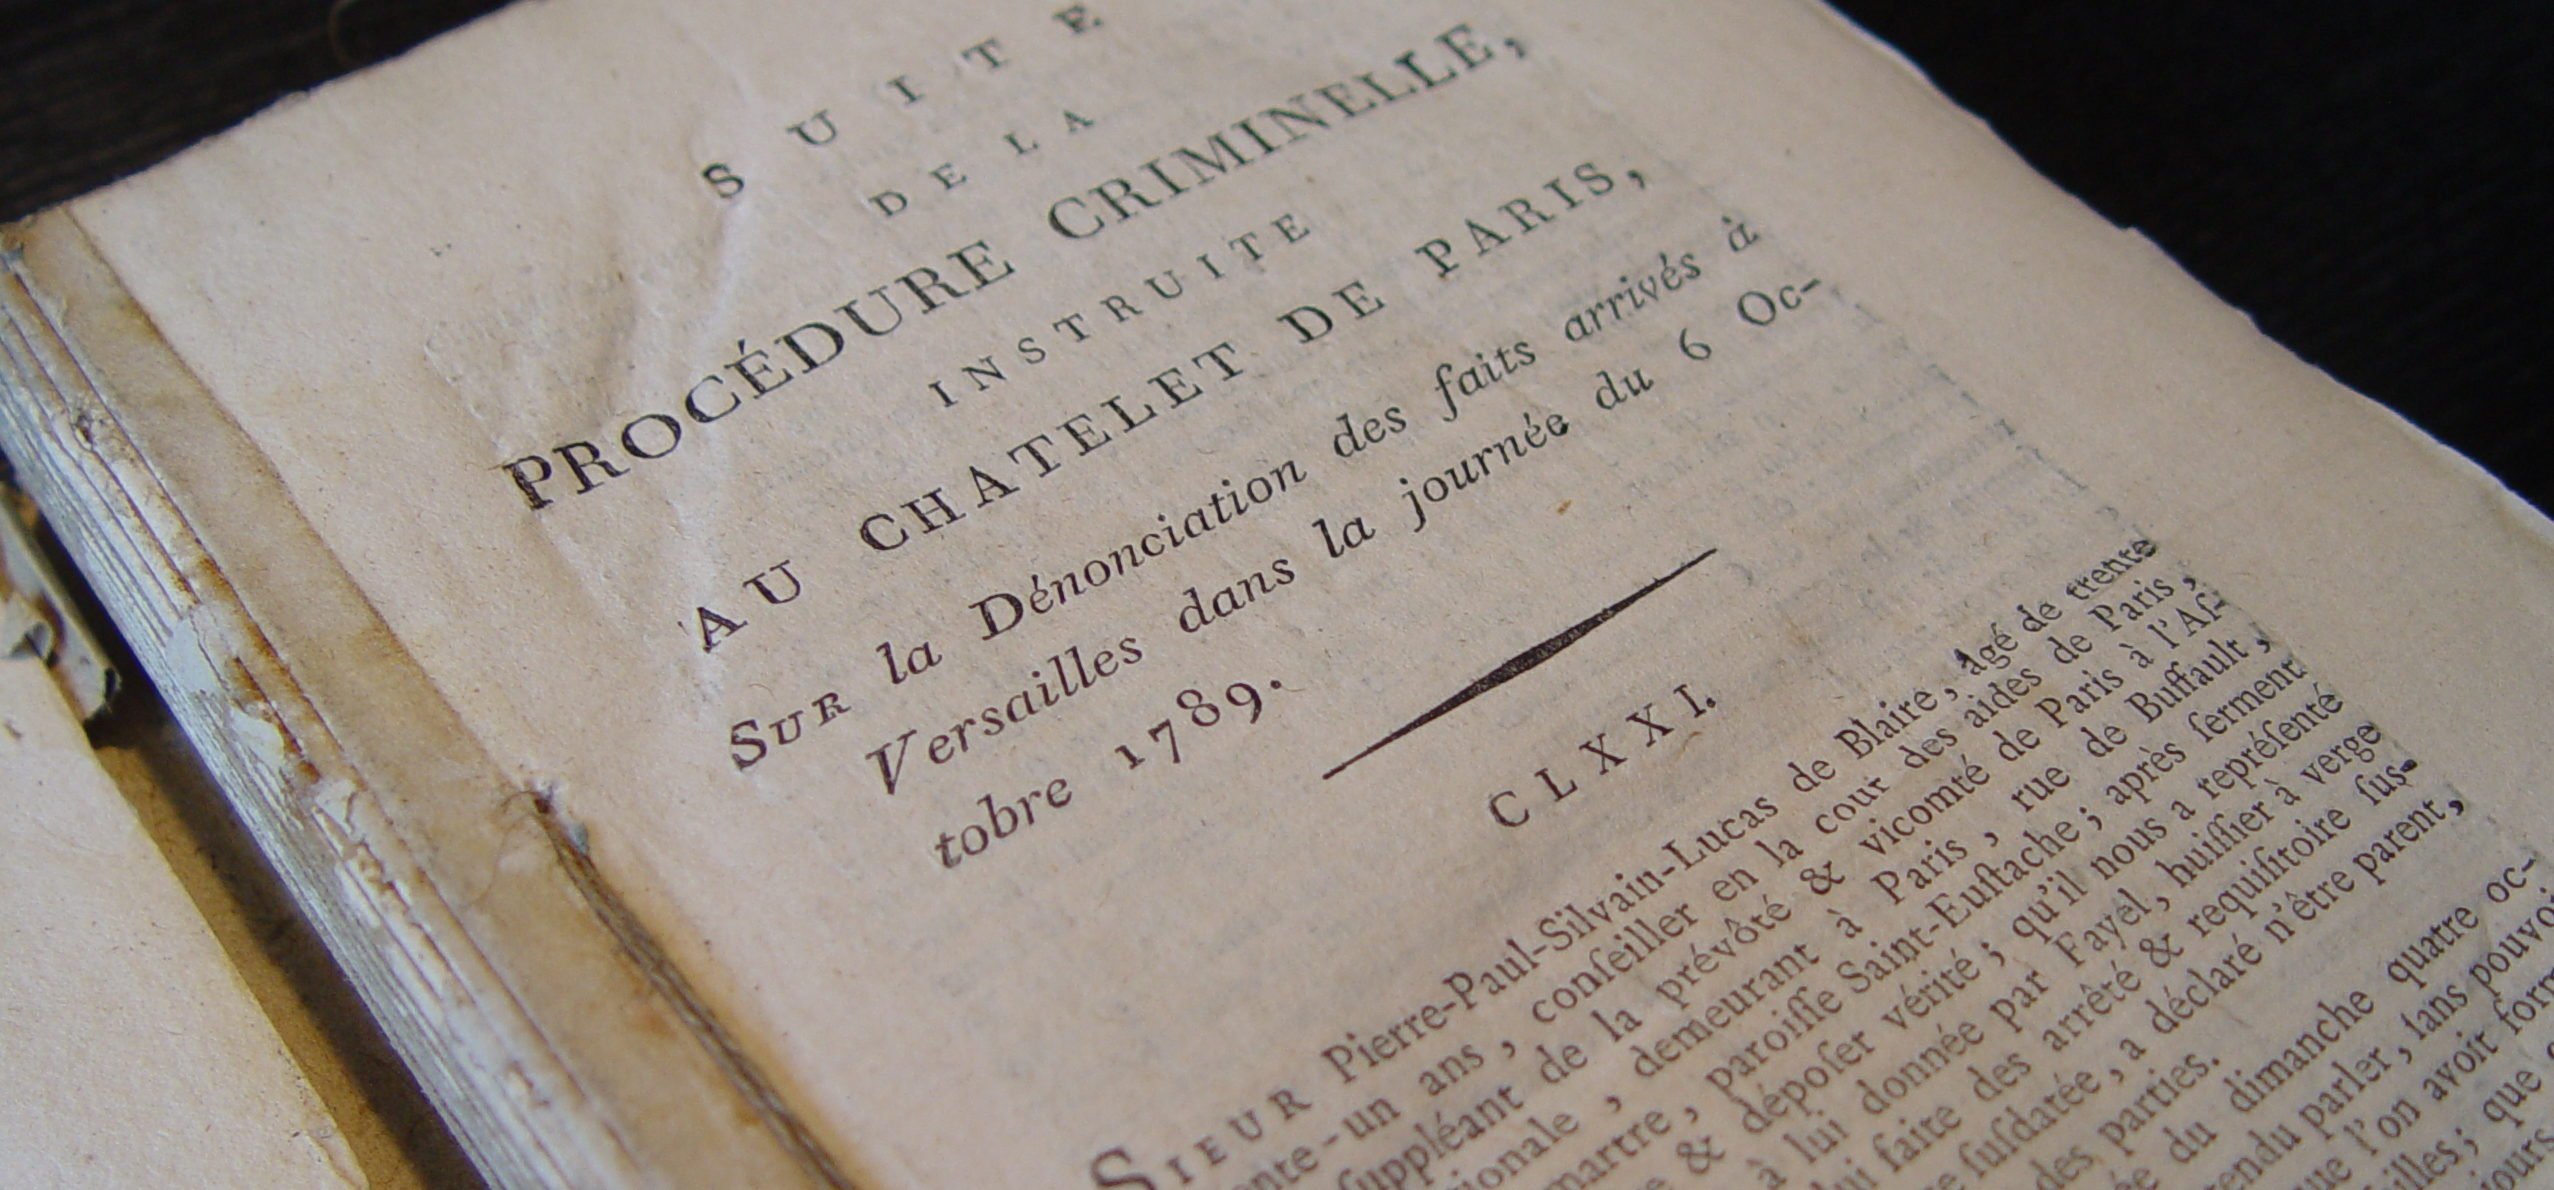 legal text in French